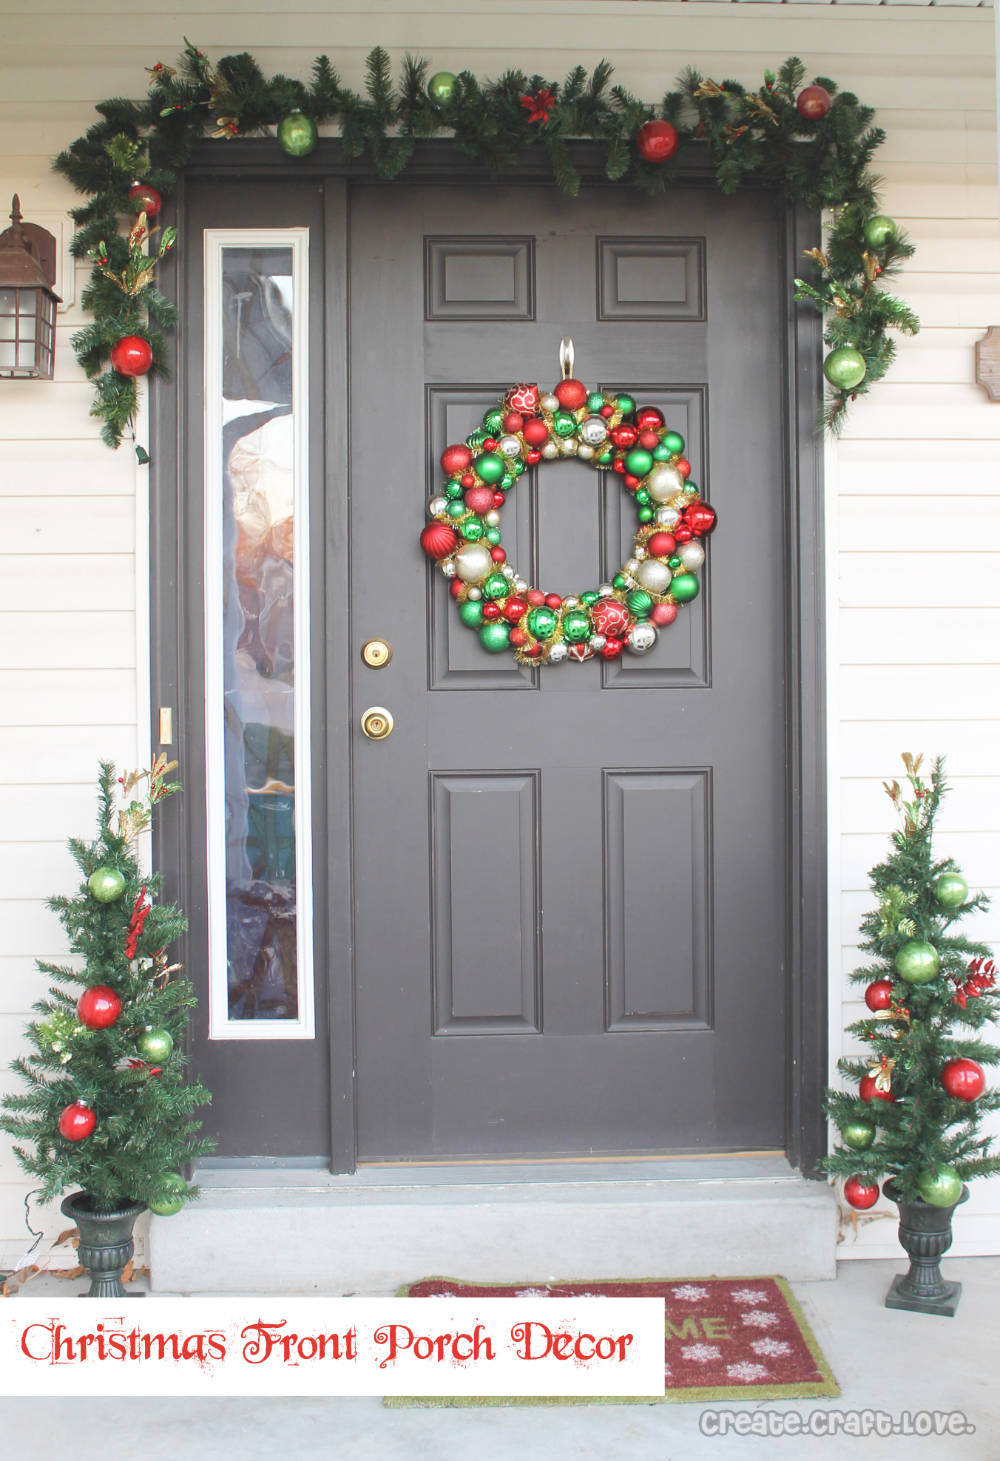 Christmas Decorating Ideas For Small Front Porch High School Mediator On A B In 2020 Front Porch Christmas Decor Christmas Porch Decor Front Door Christmas Decorations